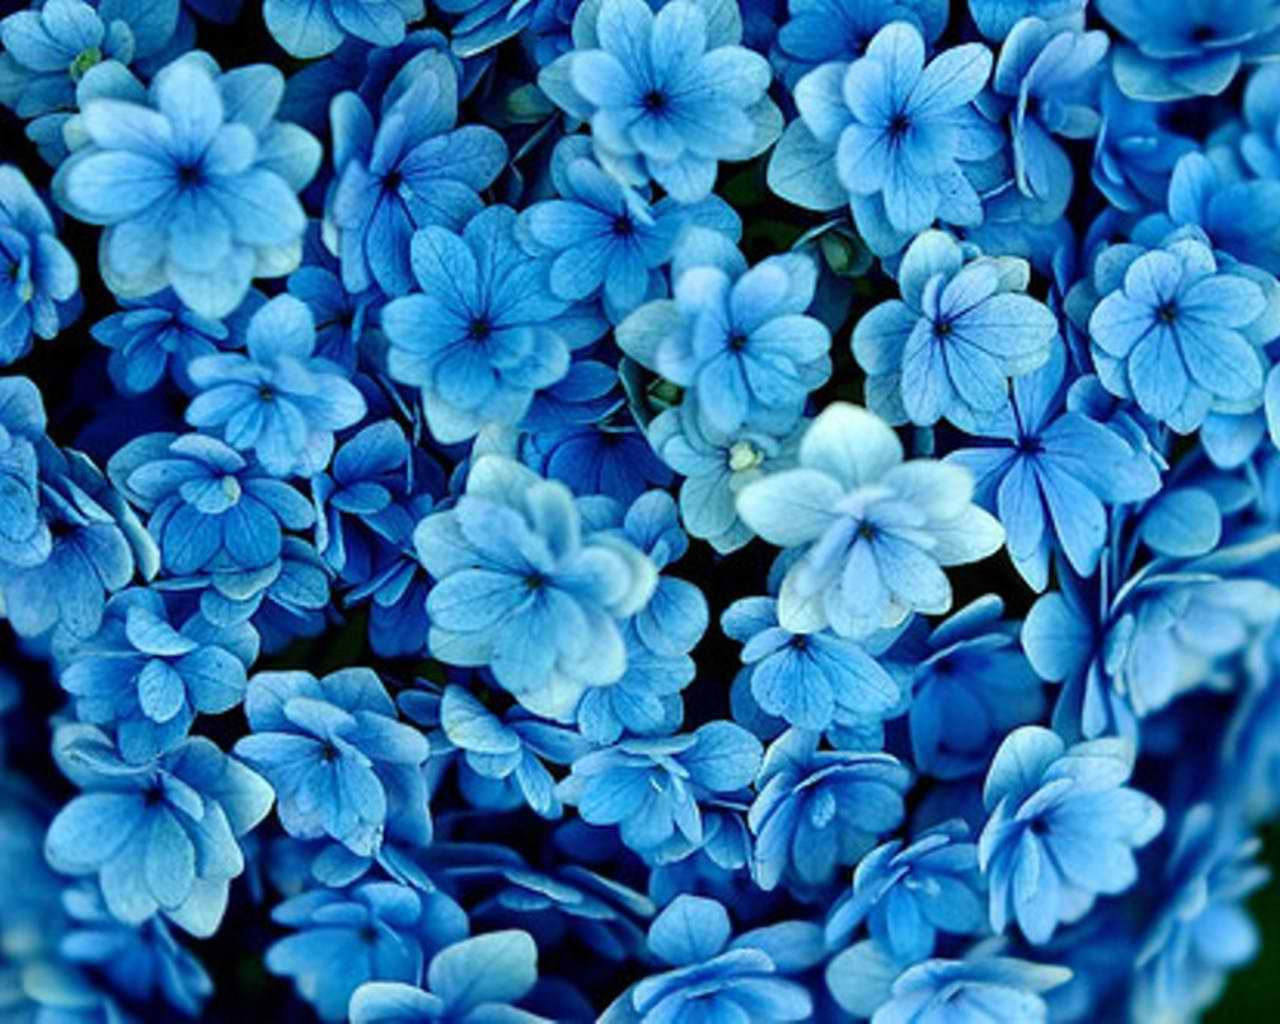 blue flowers | Blue Flowers Wallpaper | wallpaper ...